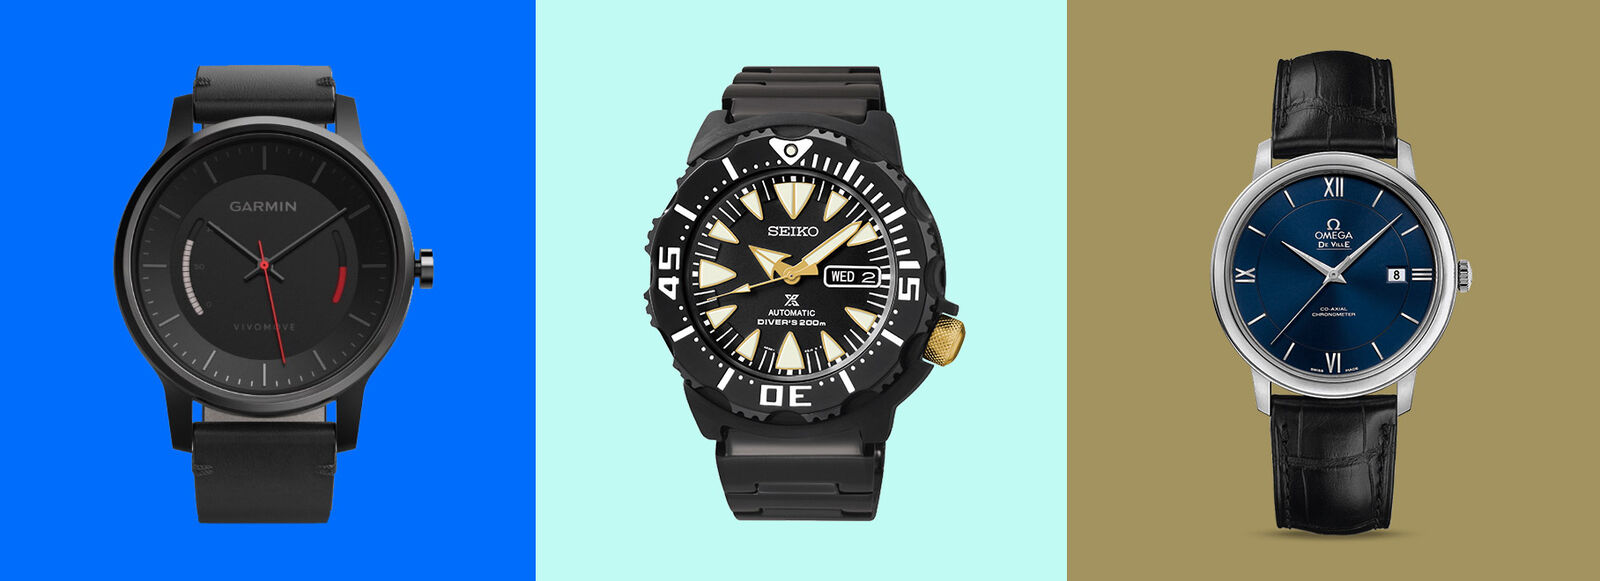 Shop Now - Give Watches The Time Of Day